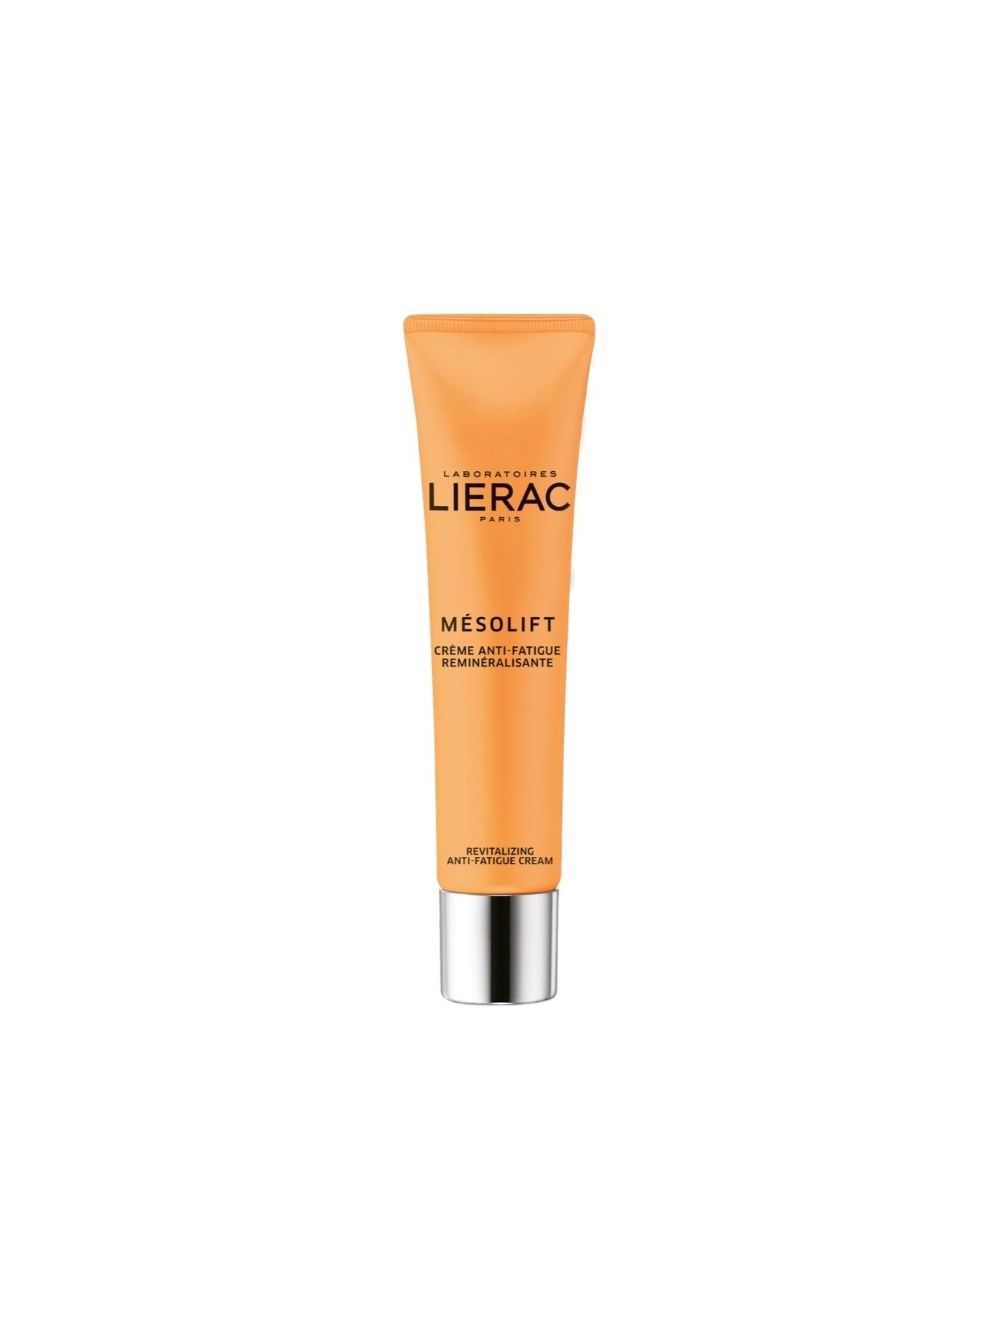 Lierac - Mésolift Creme Anti-Fadiga Remineralizante 40ml